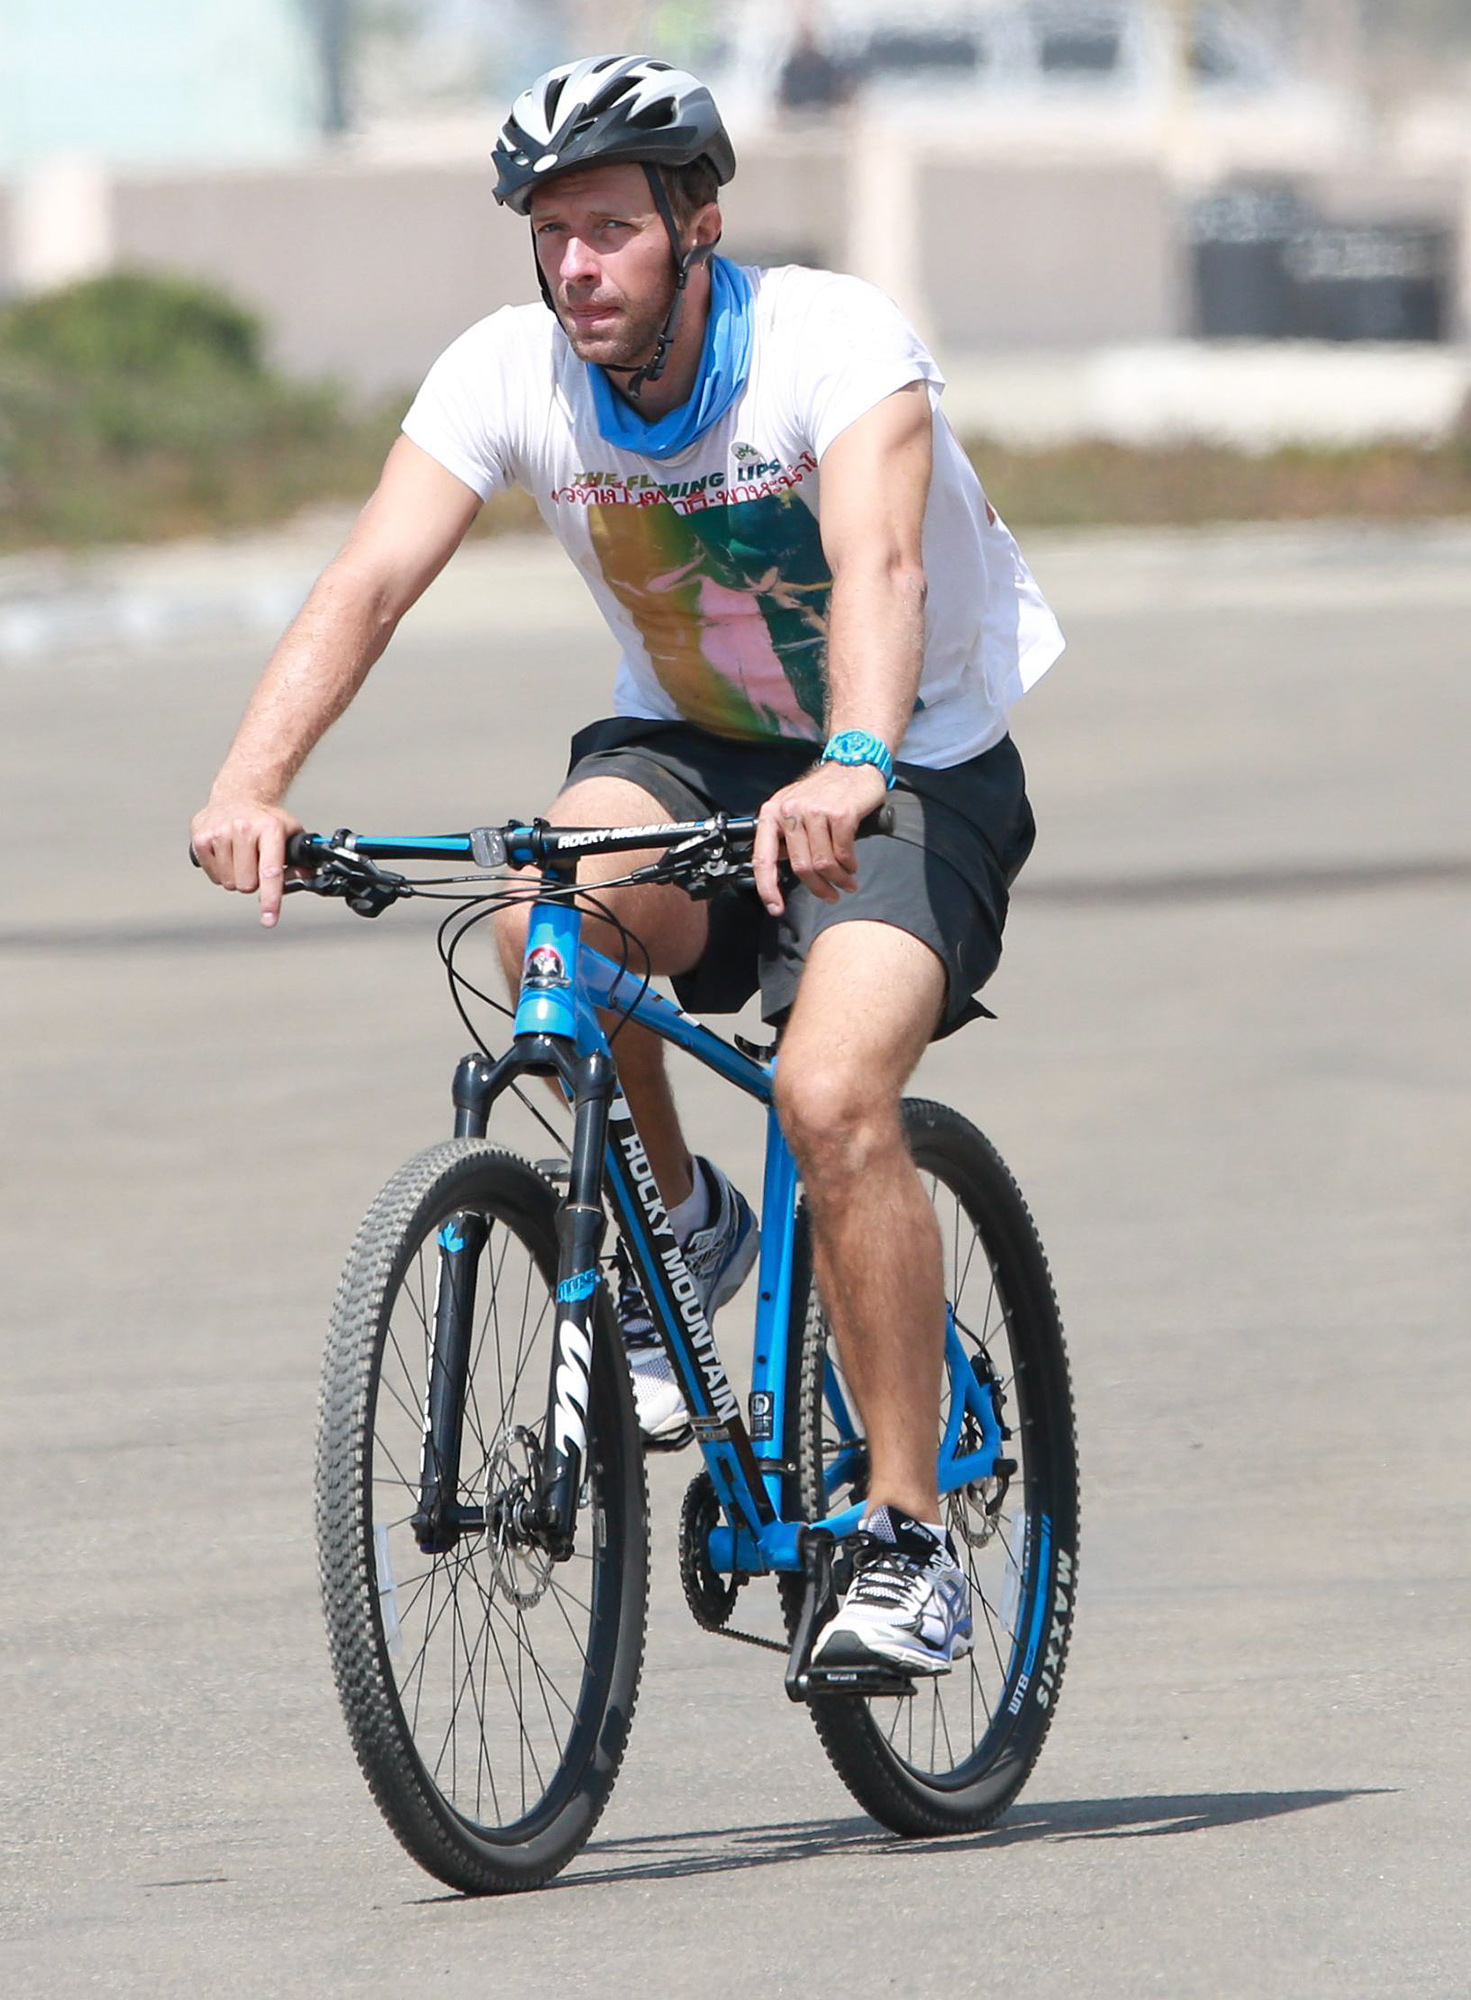 EXCLUSIVE: Coldplay singer Chris Martin is spotted riding a bicycle with a friend in Malibu